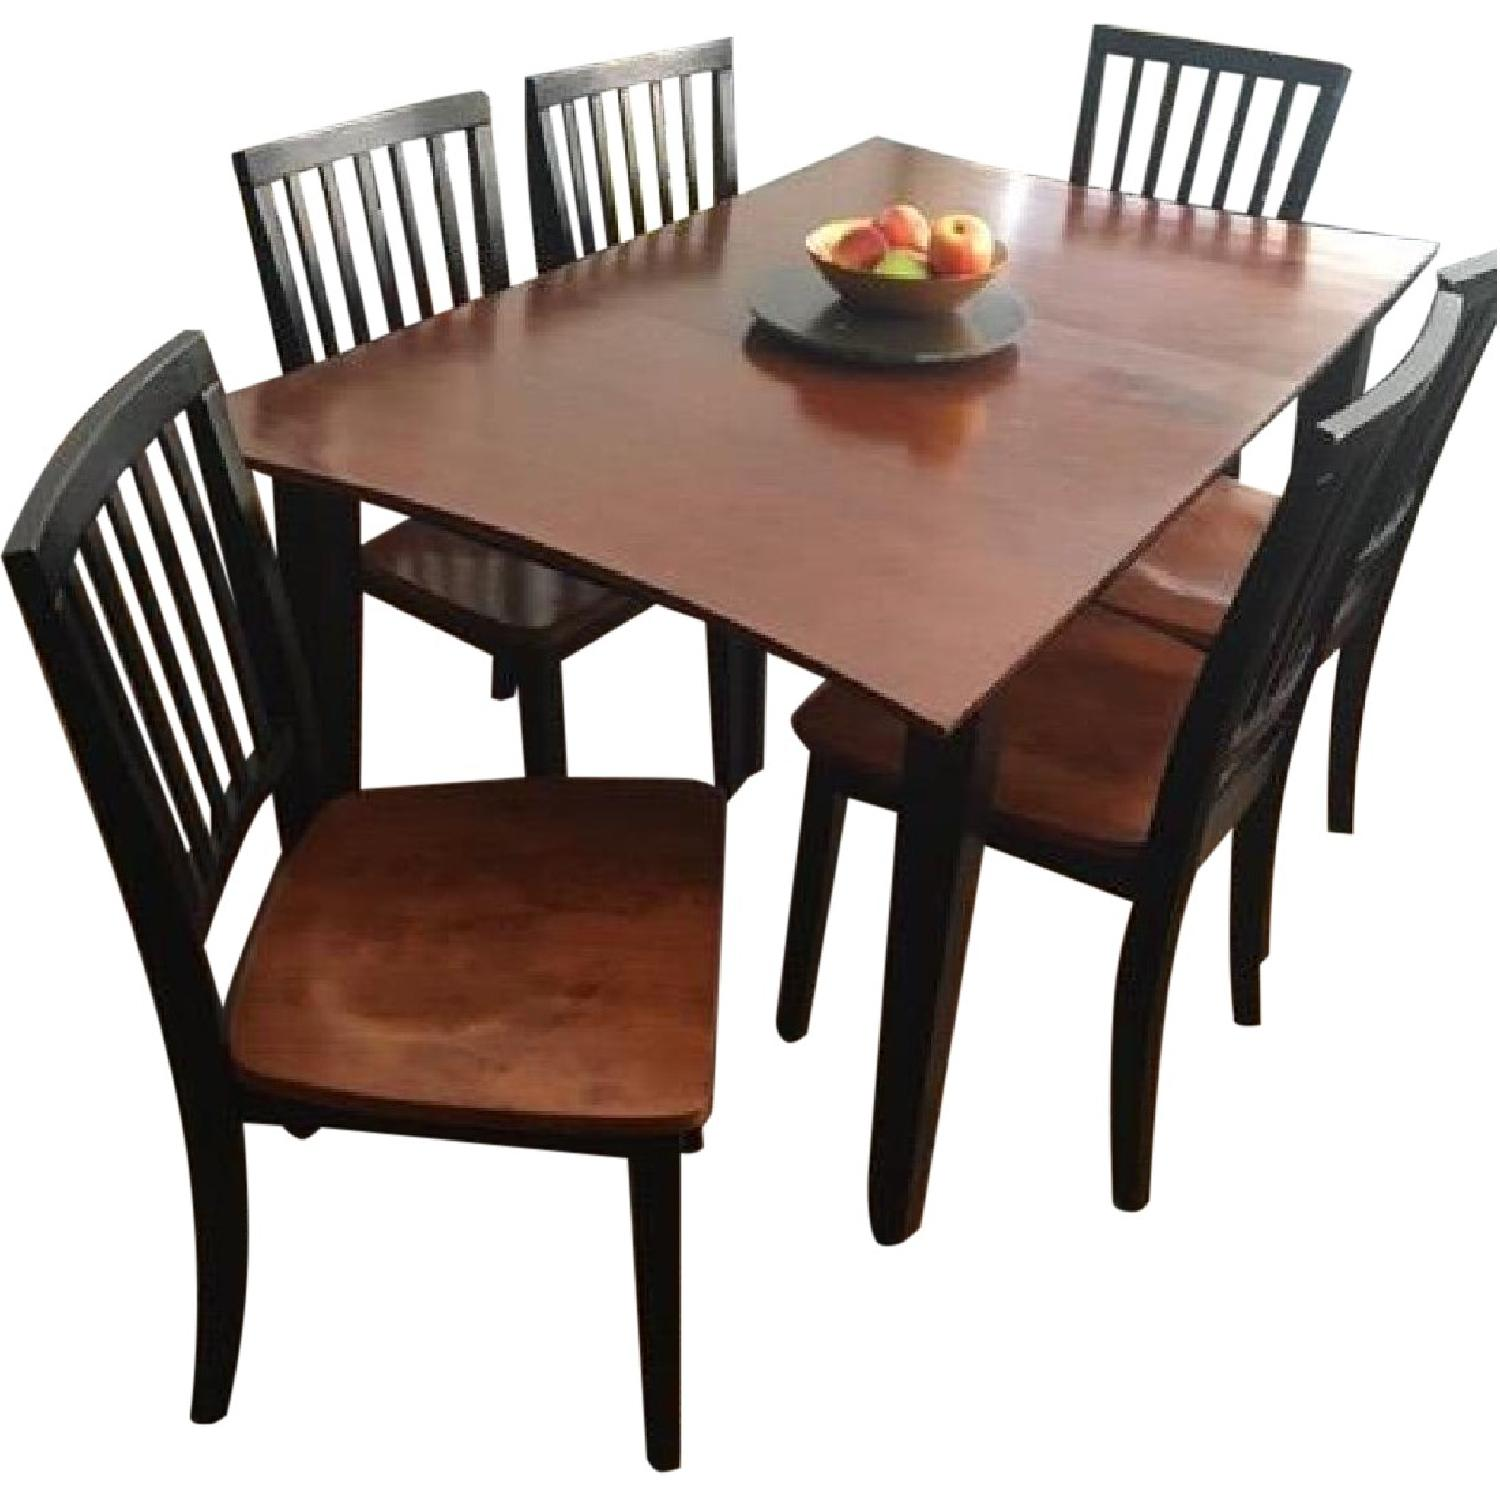 Black And Cherry Dining Table With Leaf